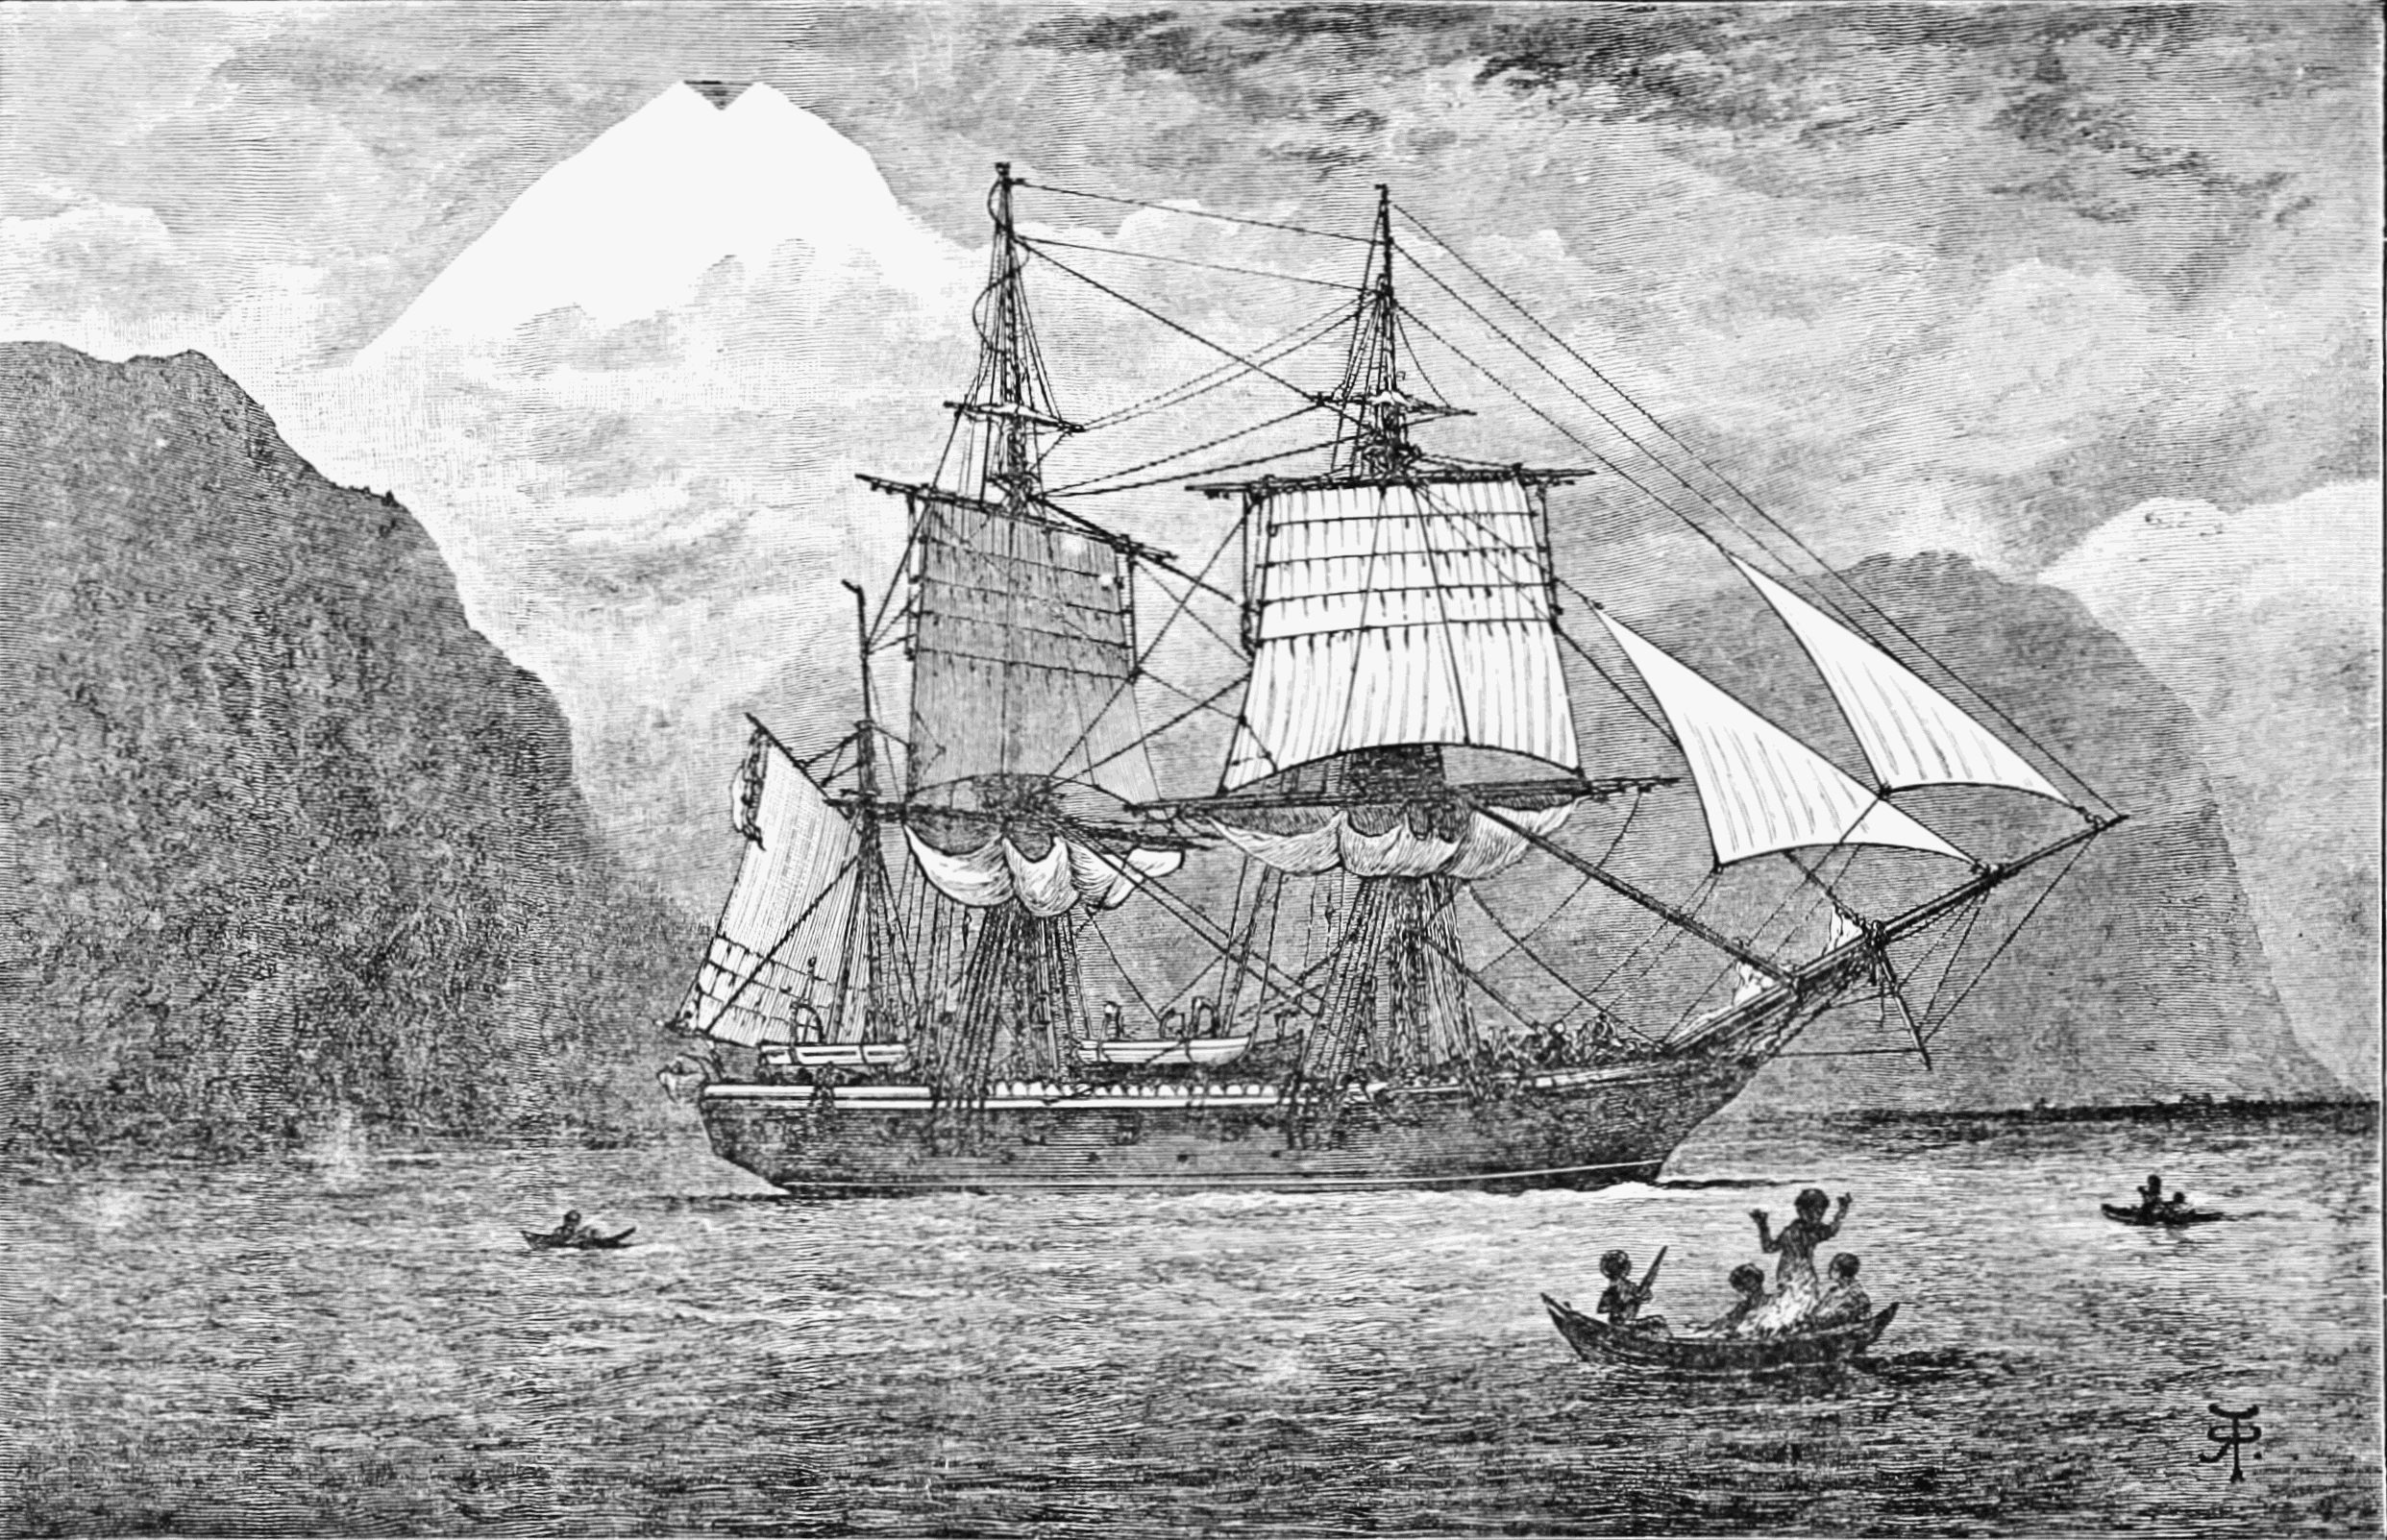 HMS Beagle launched, 1820.